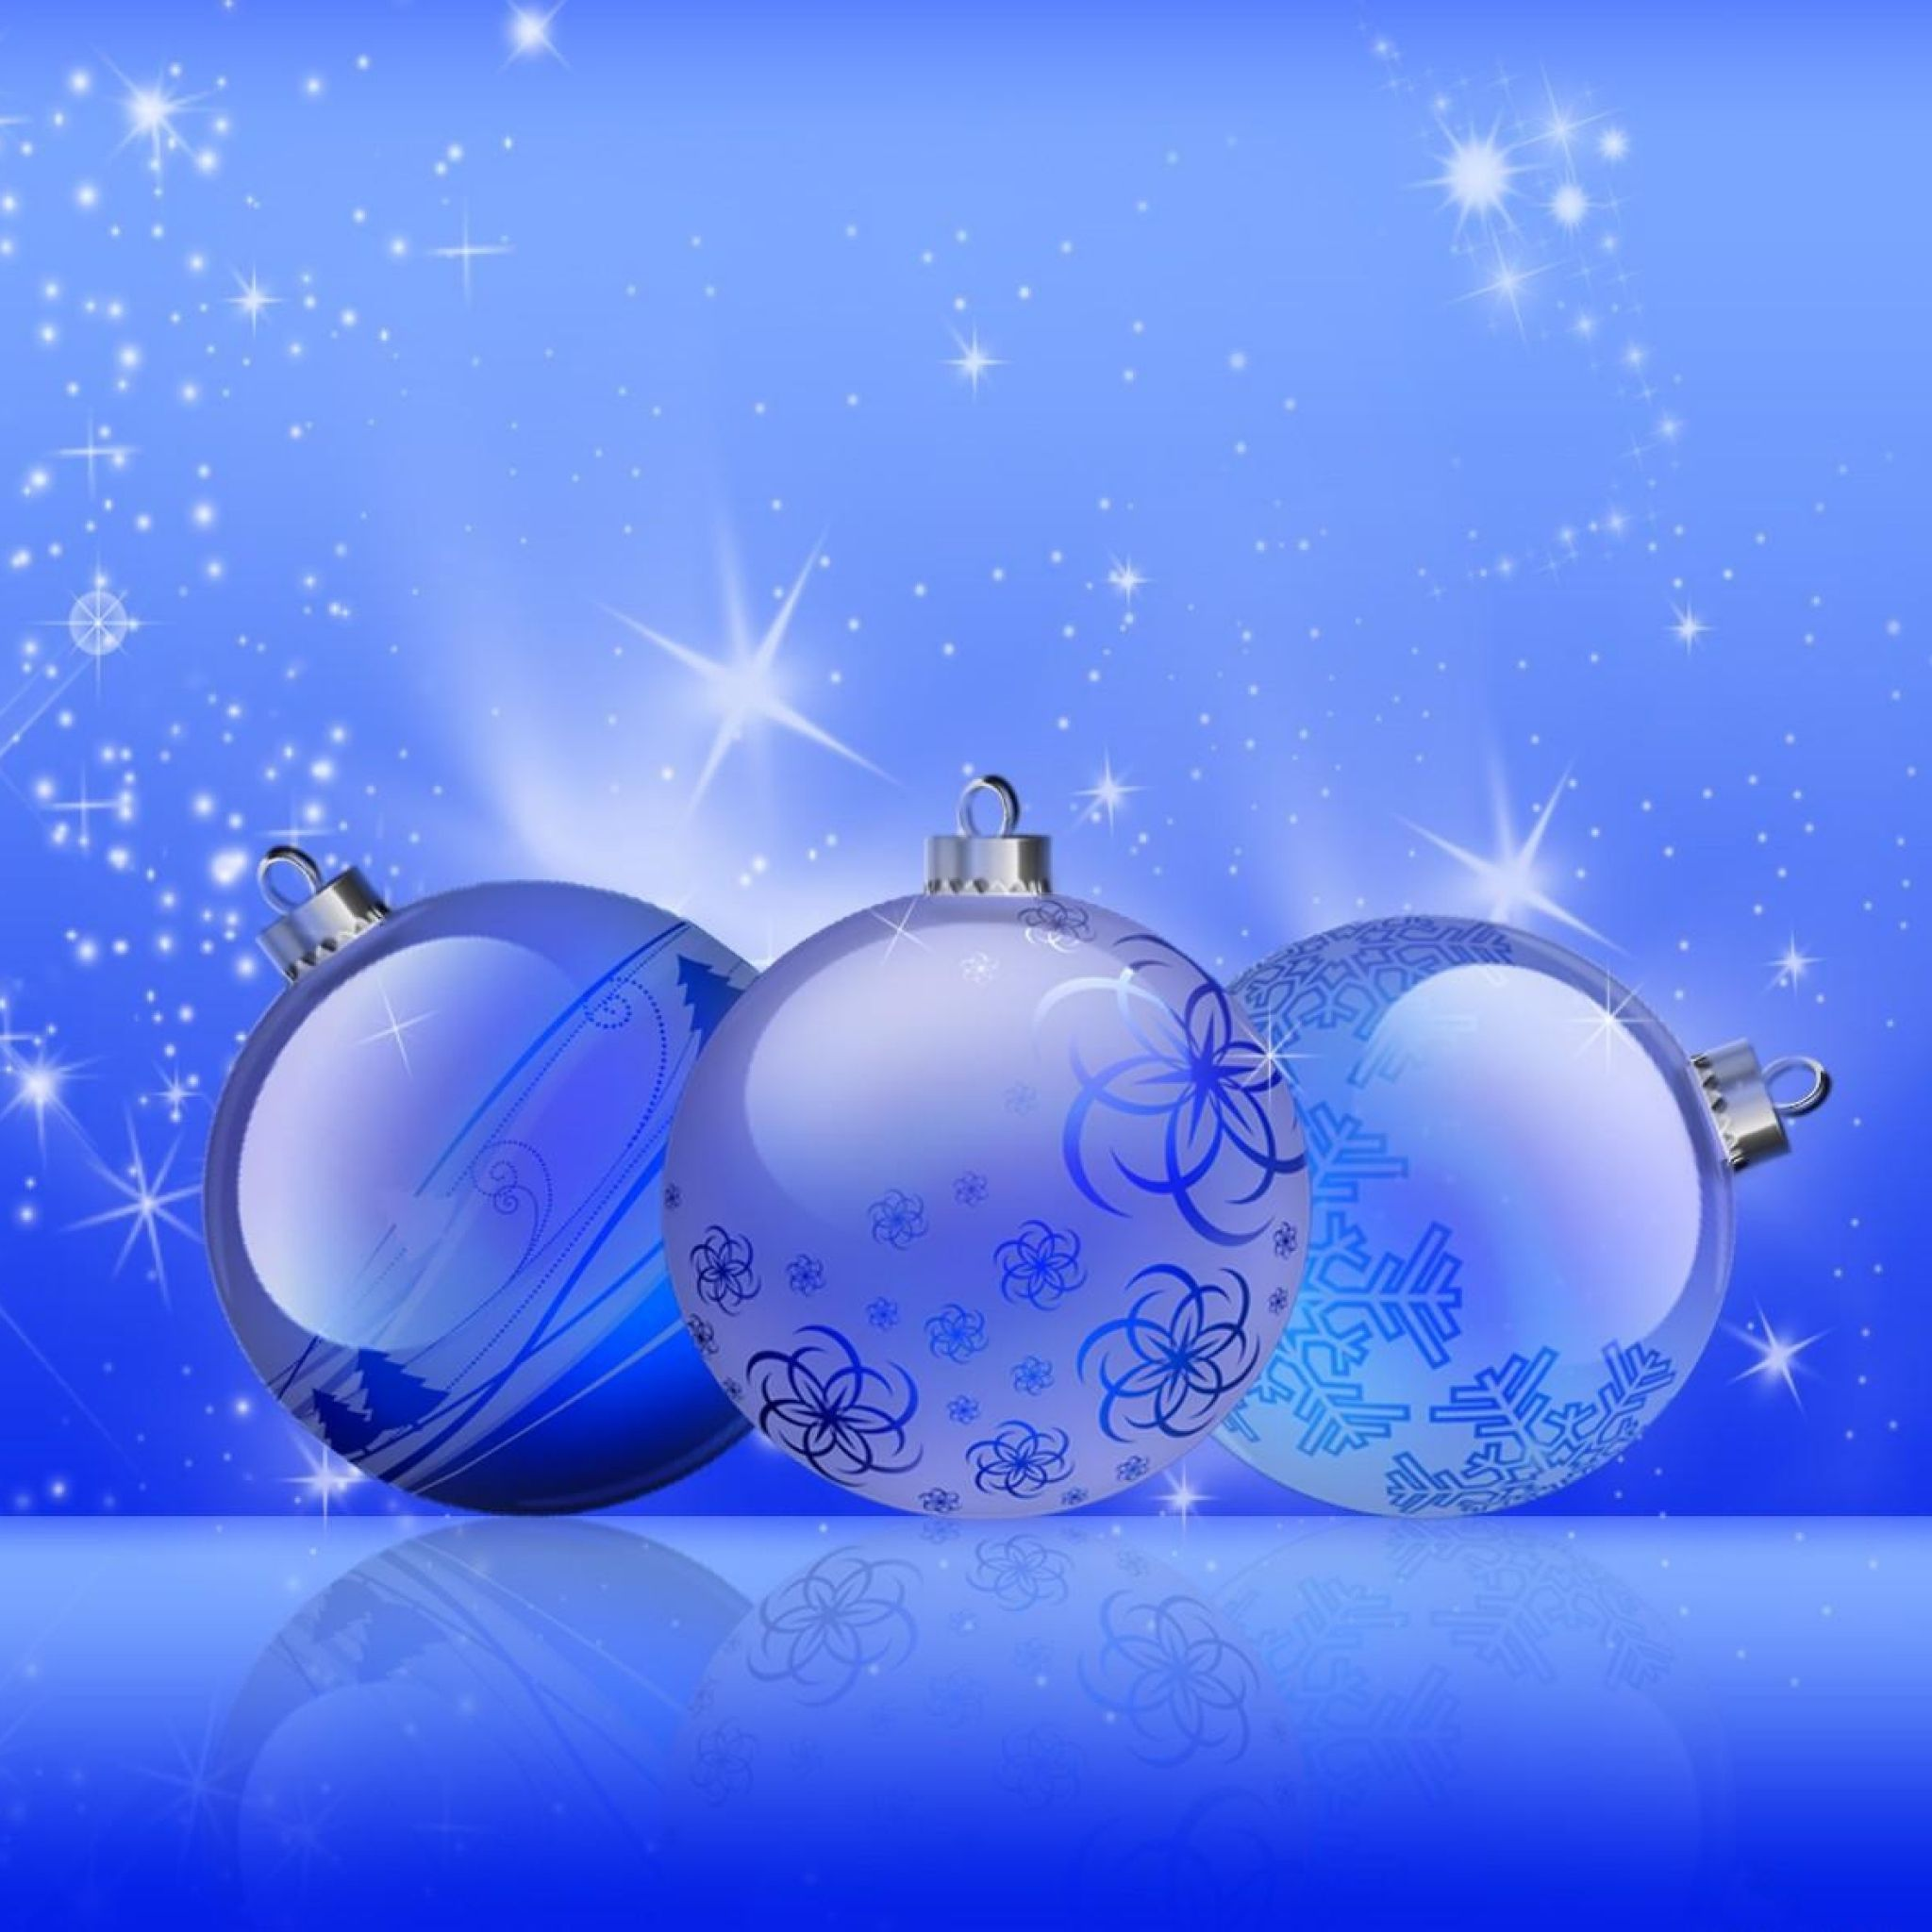 Download Wallpaper 2048x2048 Christmas Decorations Balloons Twinkling Holiday Blue Blue Christmas Ornaments Xmas Wallpaper Christmas Wallpaper Backgrounds